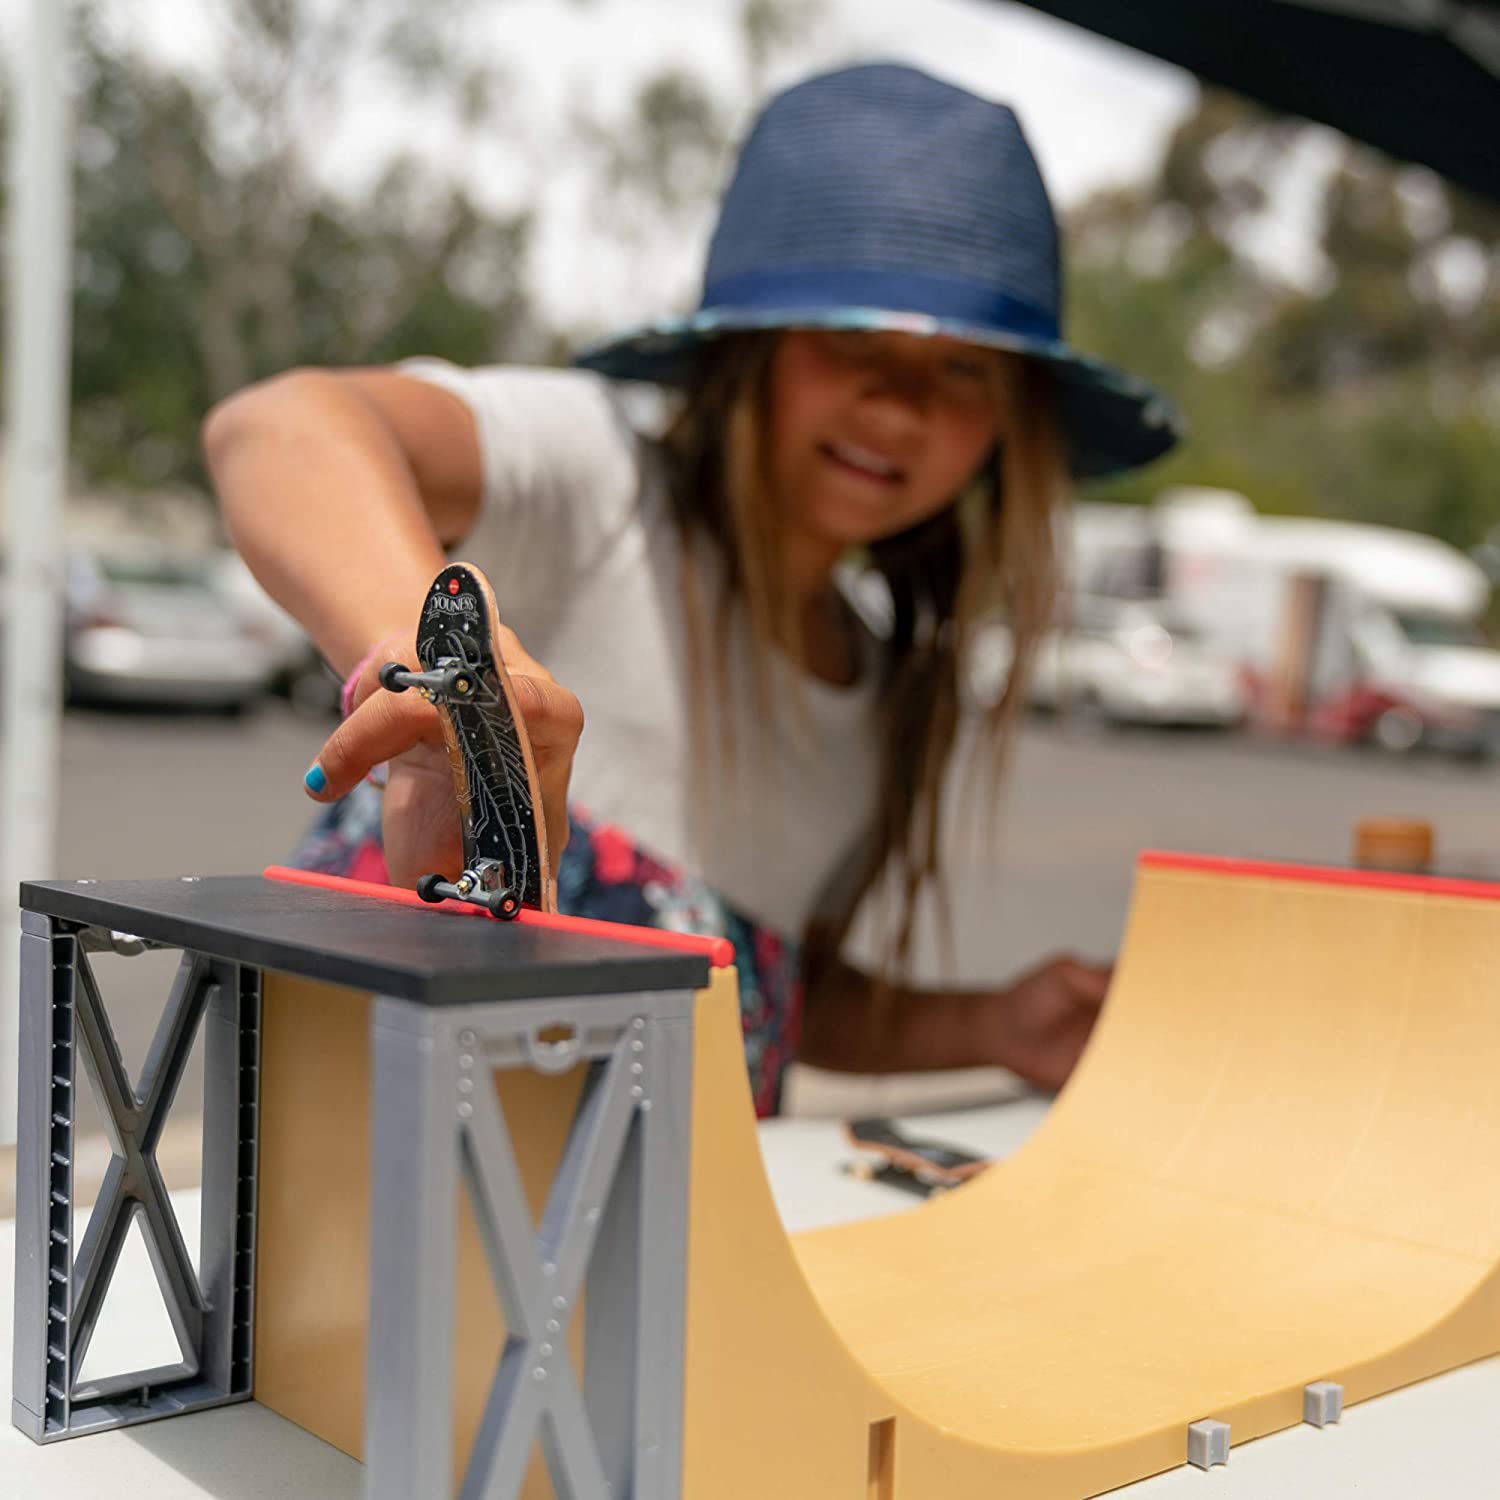 c8d44d0a5bd5a Tech Deck - Ultimate Half-Pipe Ramp and Exclusive Primitive Pro Model  Finger Board, for Ages 6 and Up